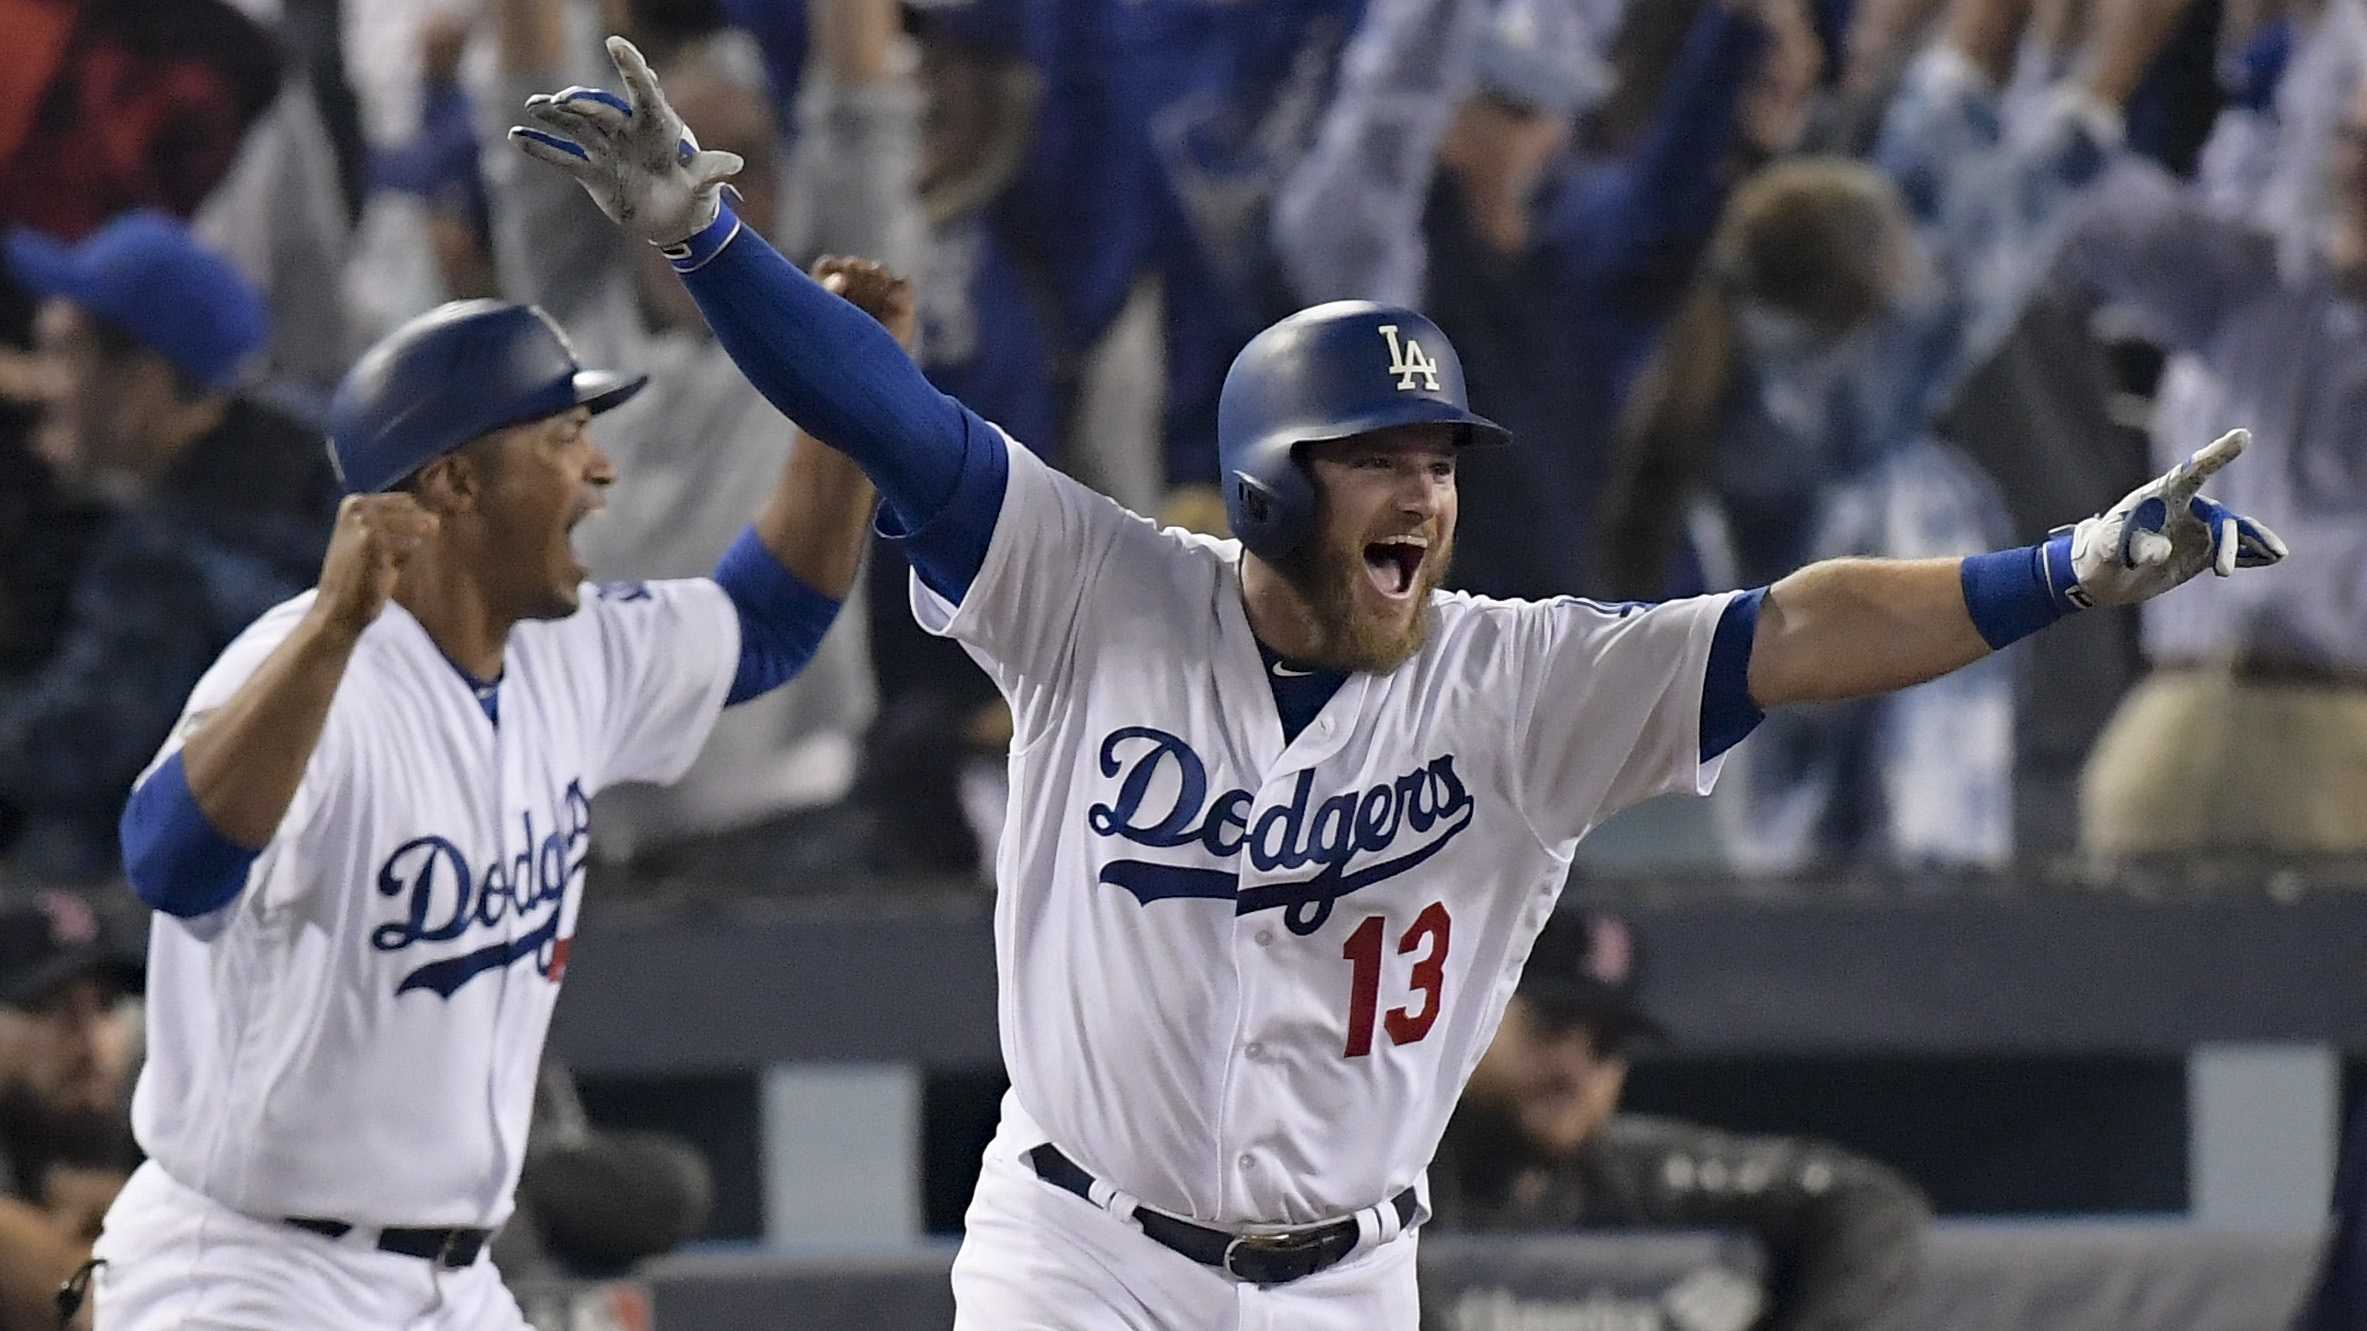 Los Angeles Dodgers' Max Muncy celebrates his walk off home run against the Boston Red Sox during the 18th inning in Game 3 of the World Series baseball game on Saturday, Oct. 27, 2018, in Los Angeles.